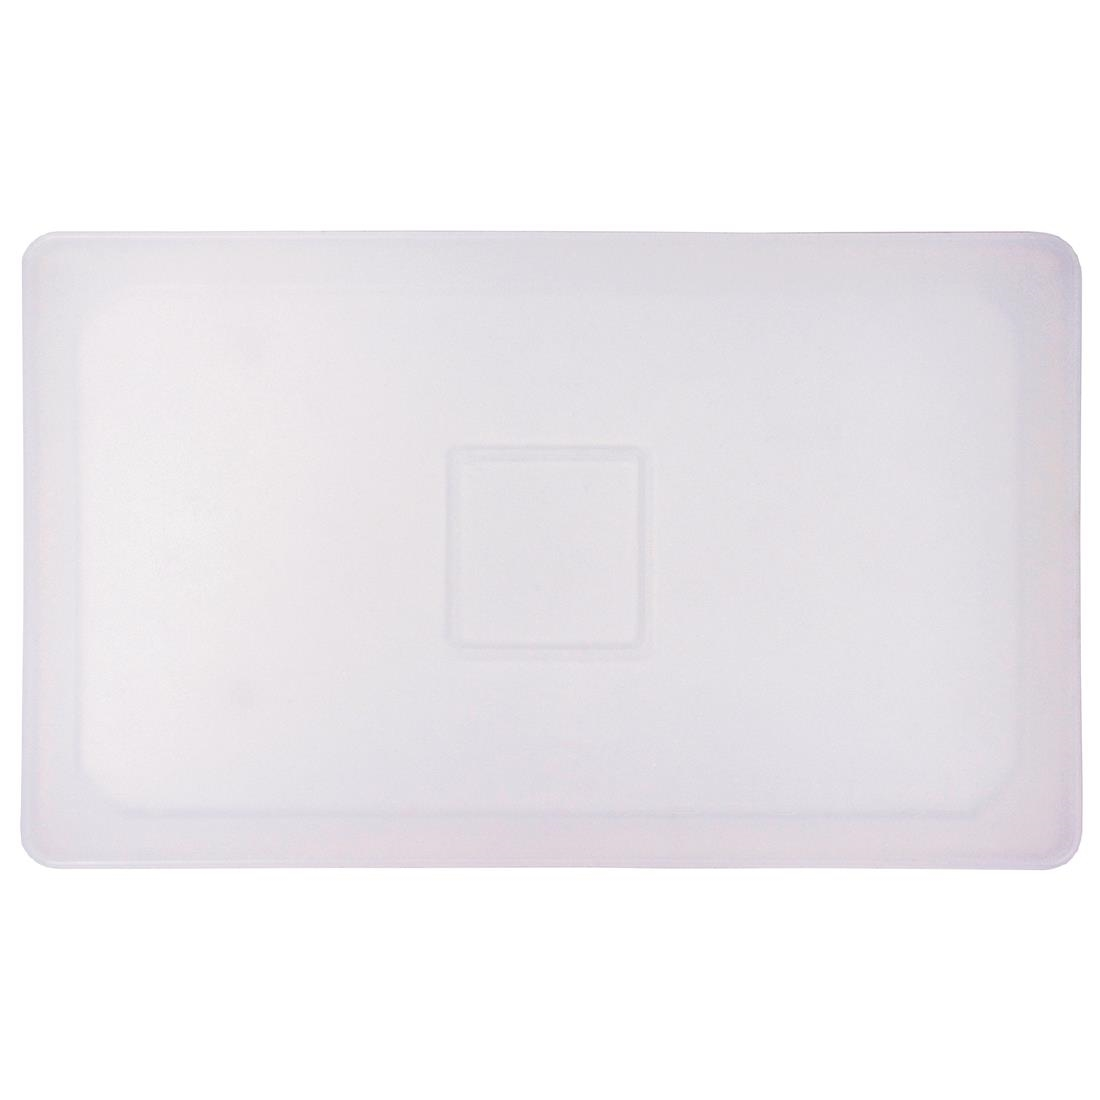 Image of Flexsil Silicone 1/4 Gastronorm Lid Clear